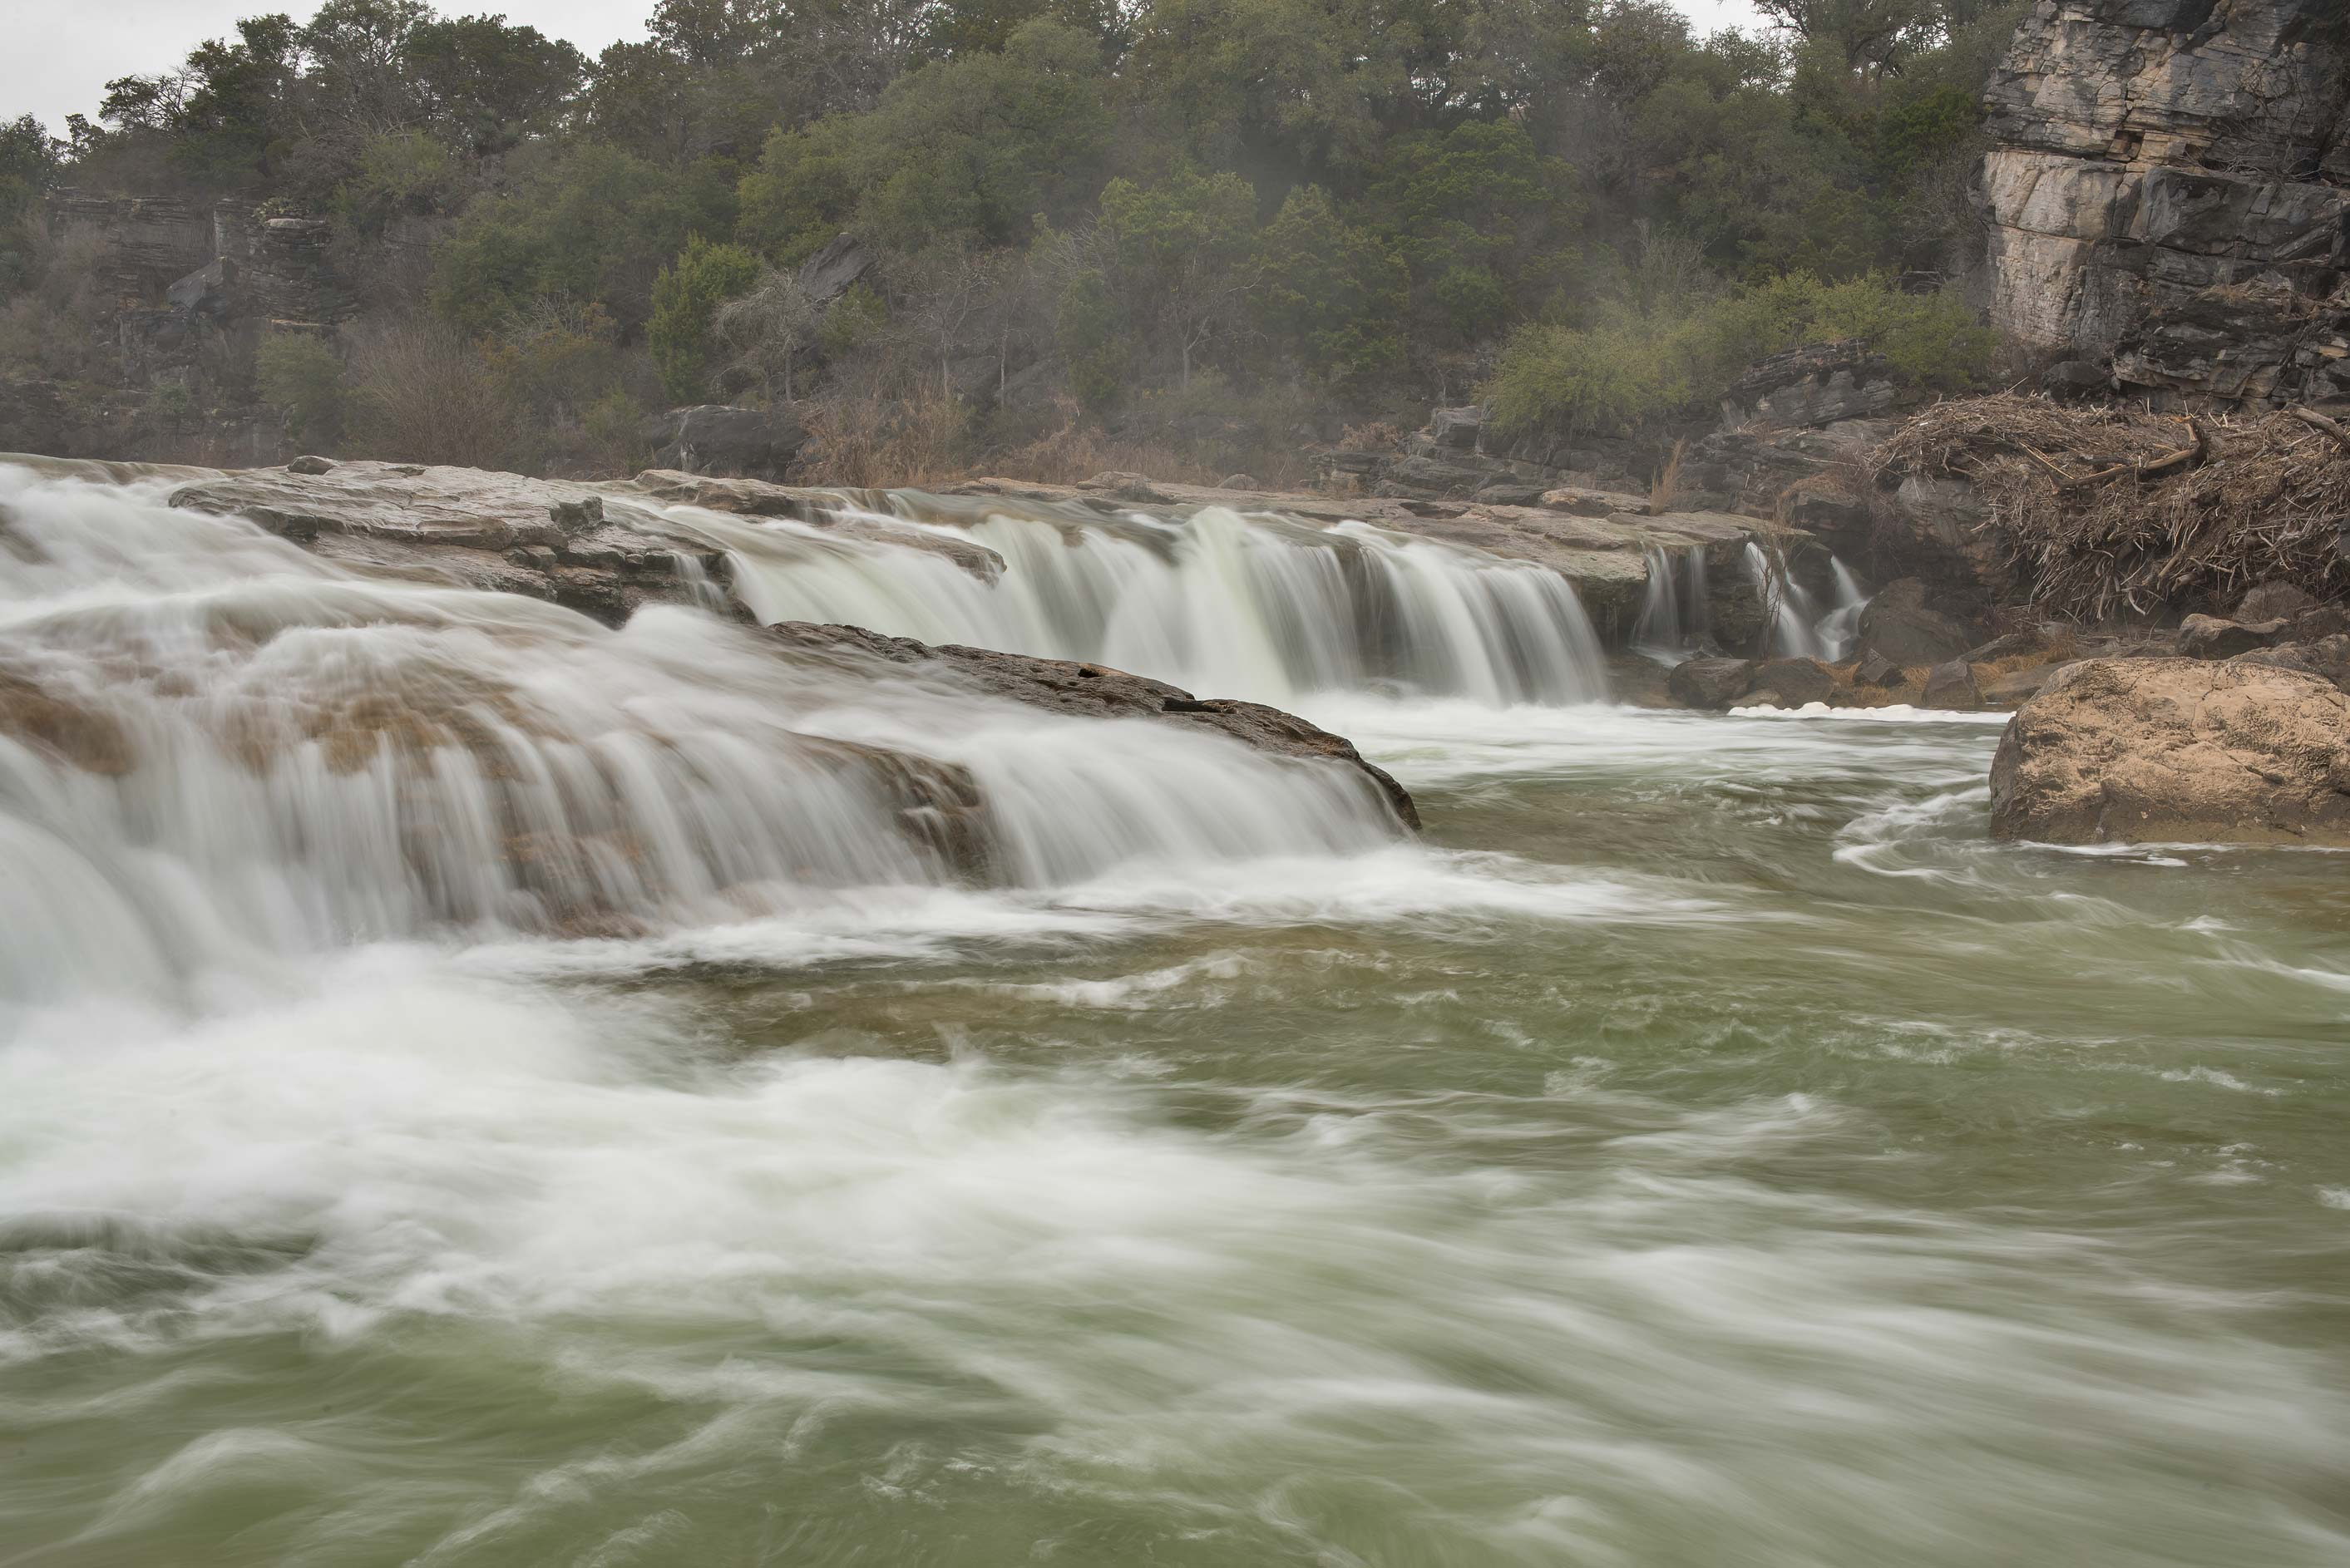 Water cascades in Pedernales Falls State Park. Johnson City, Texas